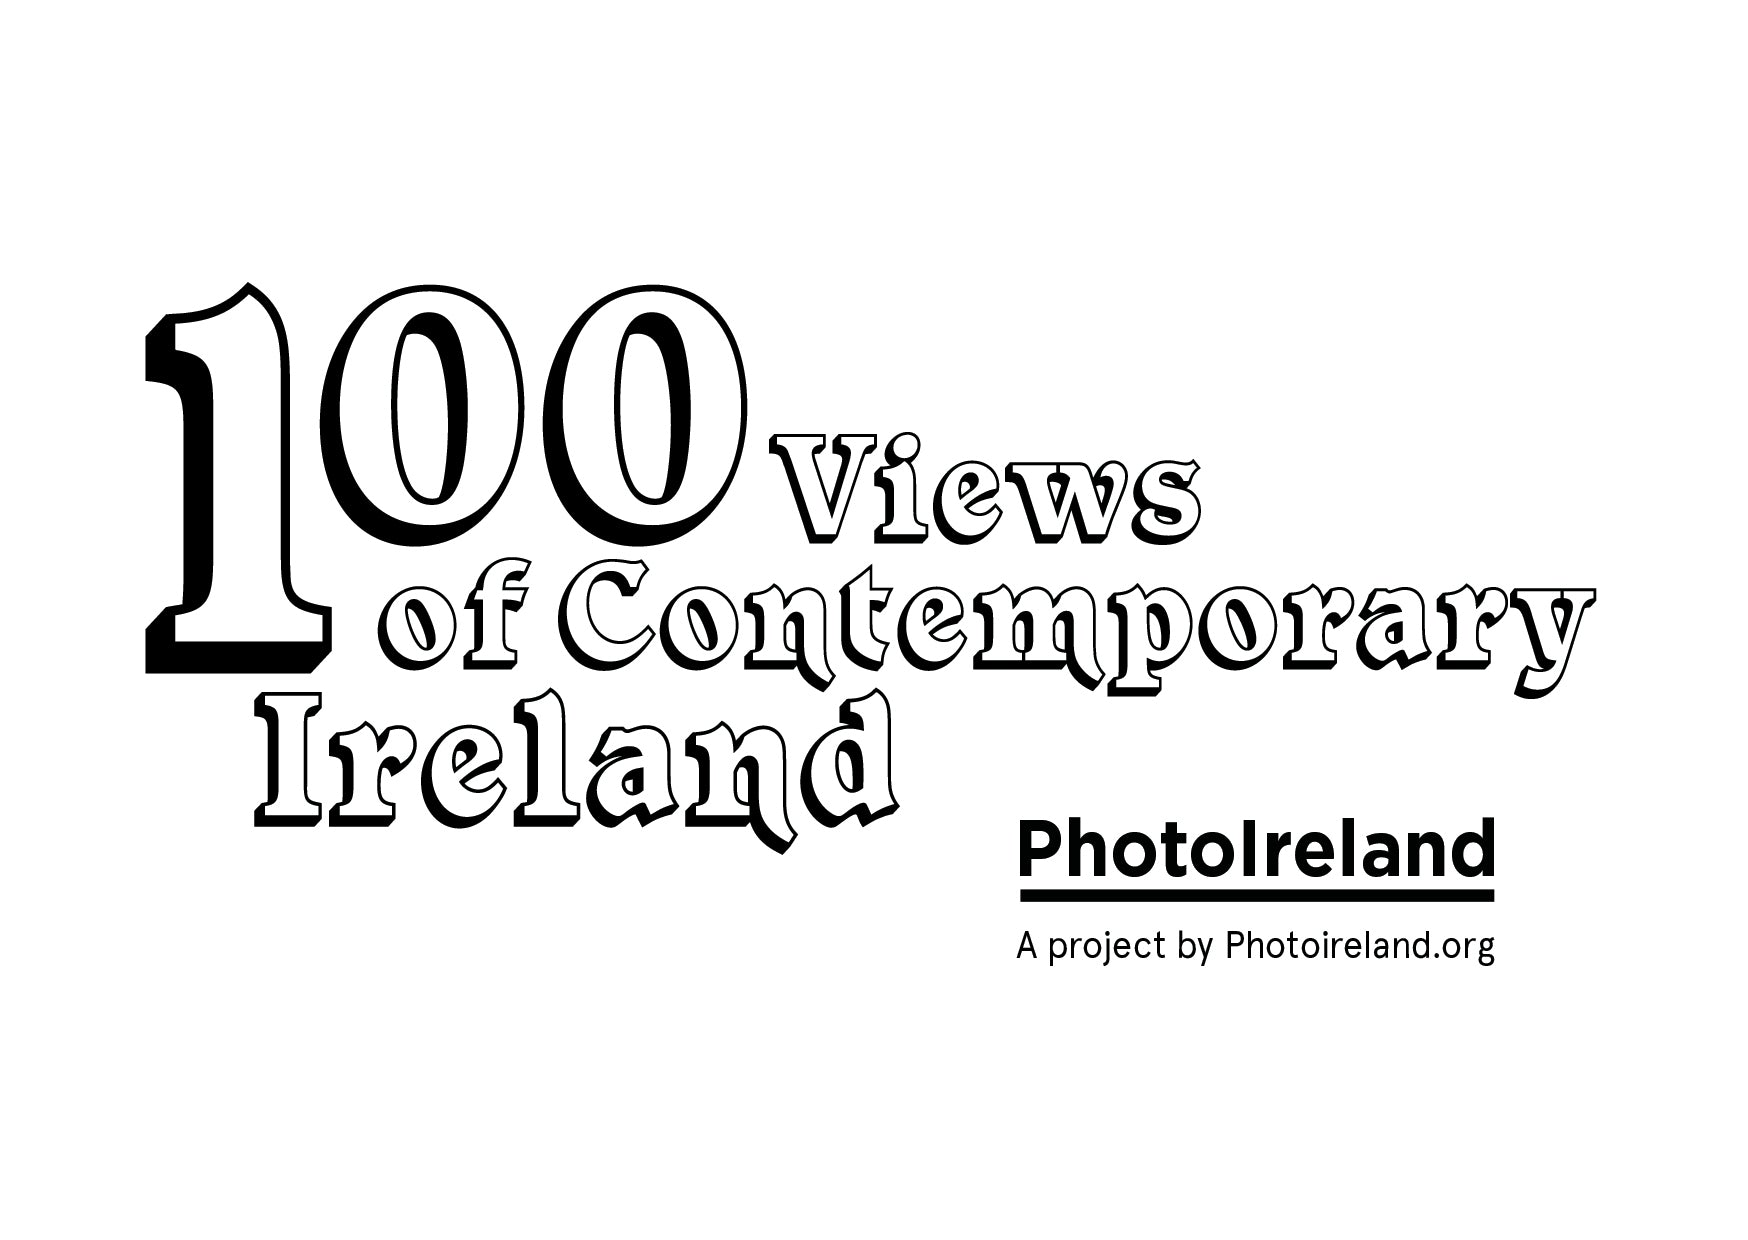 Aisling McCoy, 100 Views of Contemporary Ireland